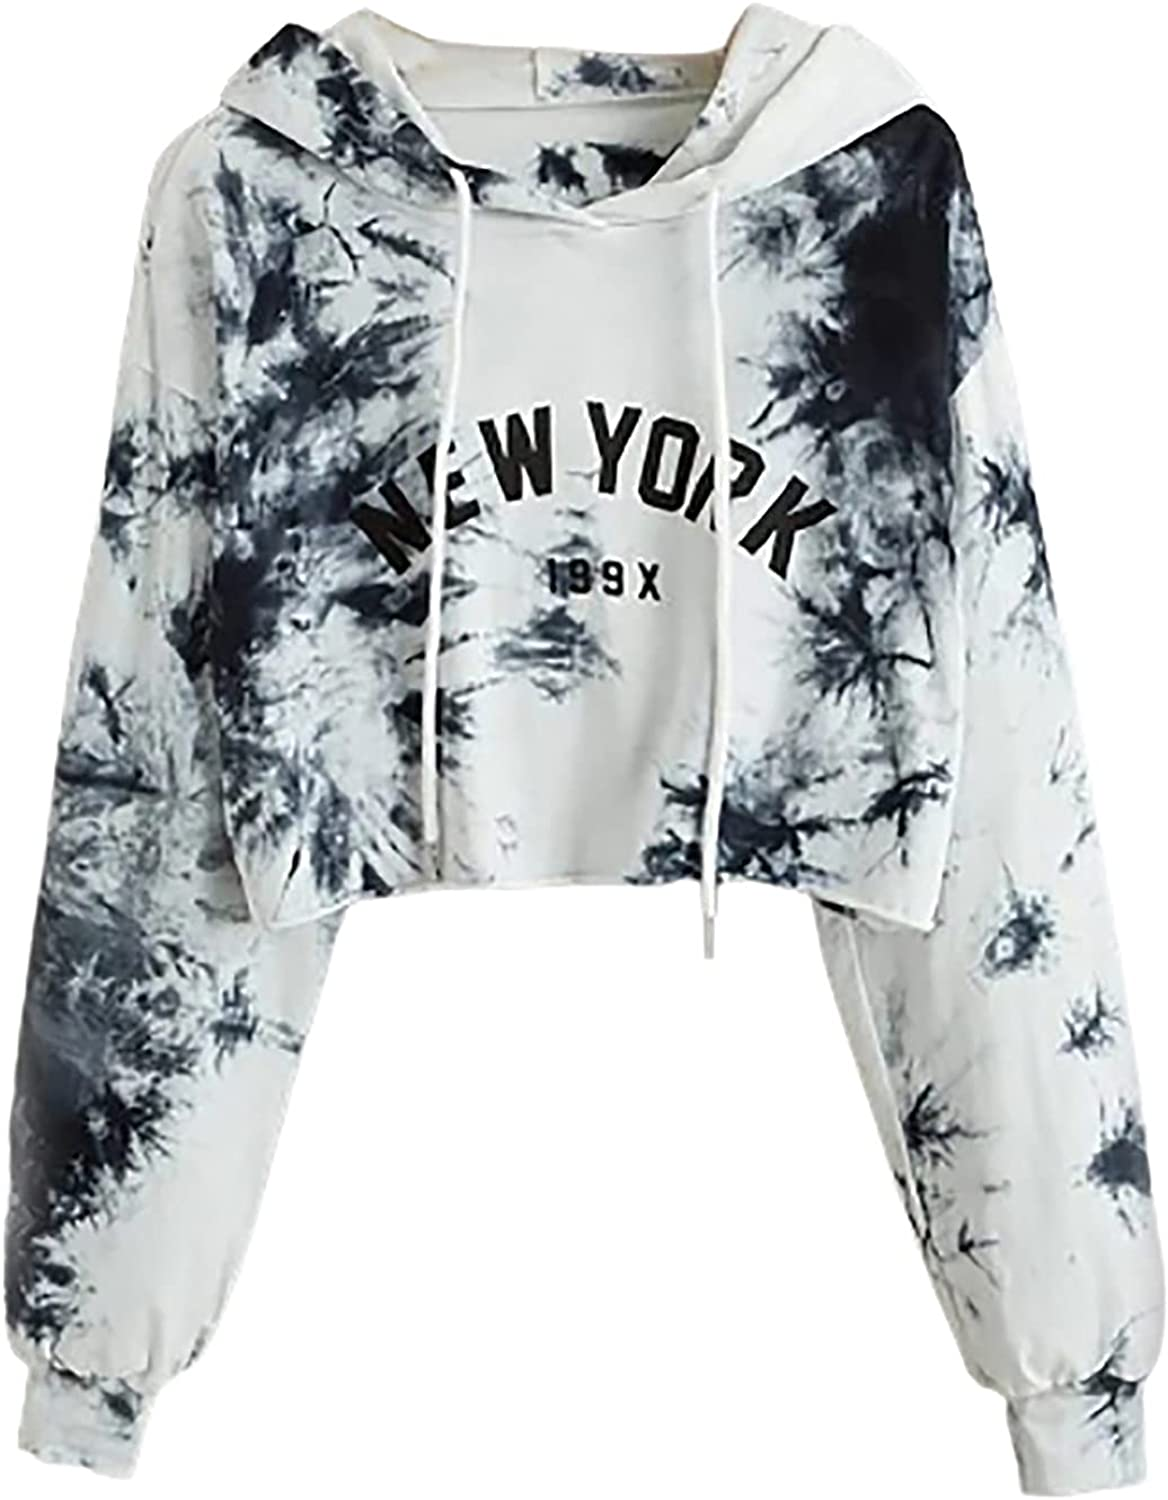 977 Women's Gradient Long Sleeve Hoodie Funny Graphic Print Casual Pullover Cute Short Tie-Dye T Shirt Blouse